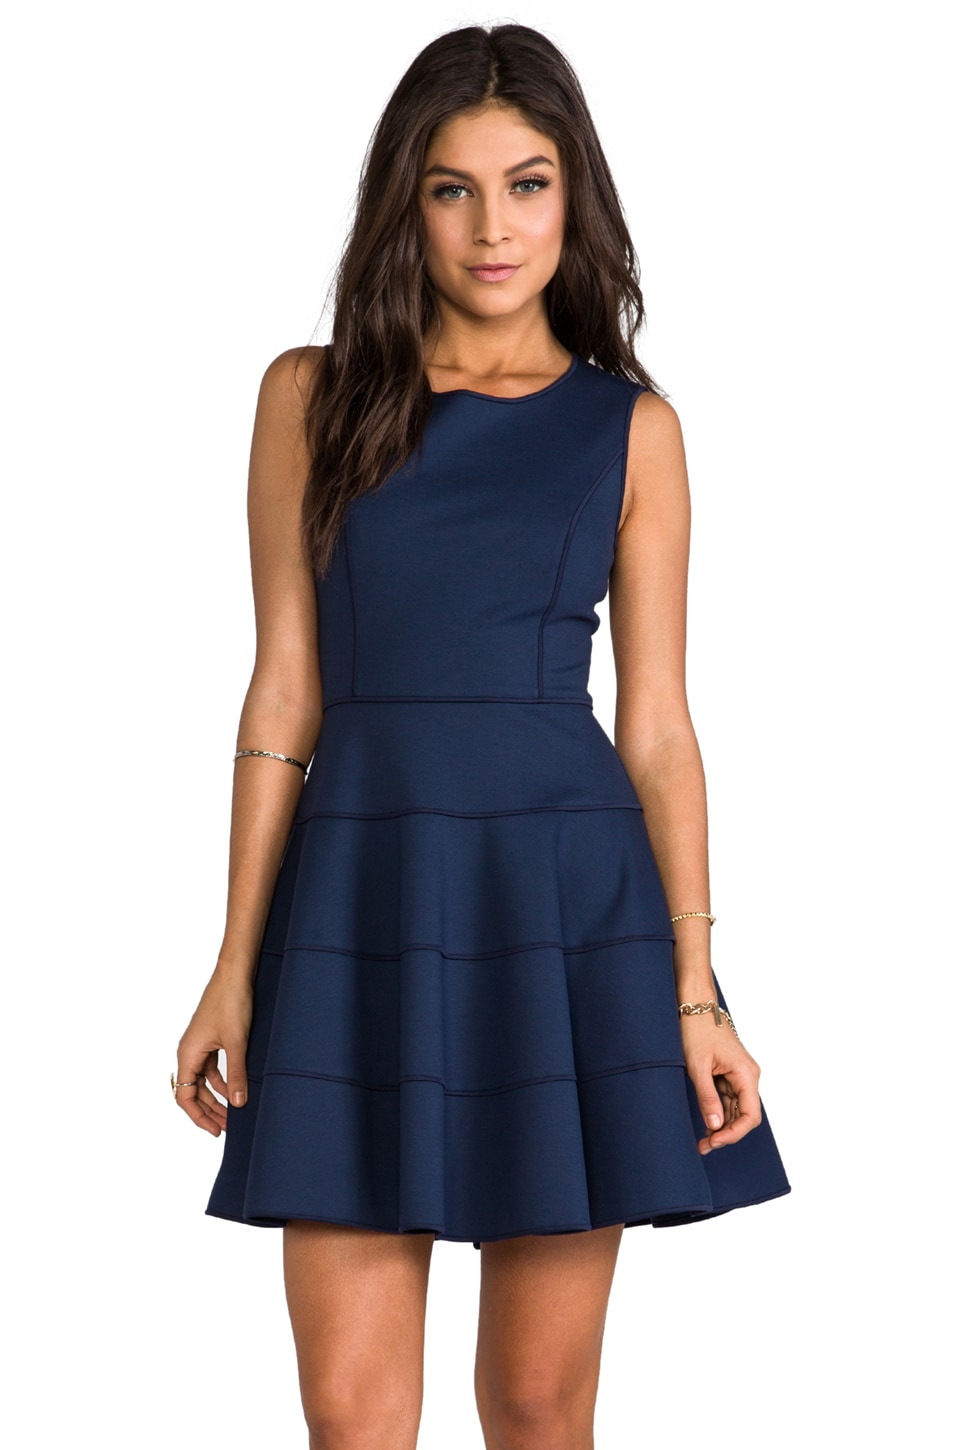 Halston Heritage Ponte Dress with Flare Skirt in Navy